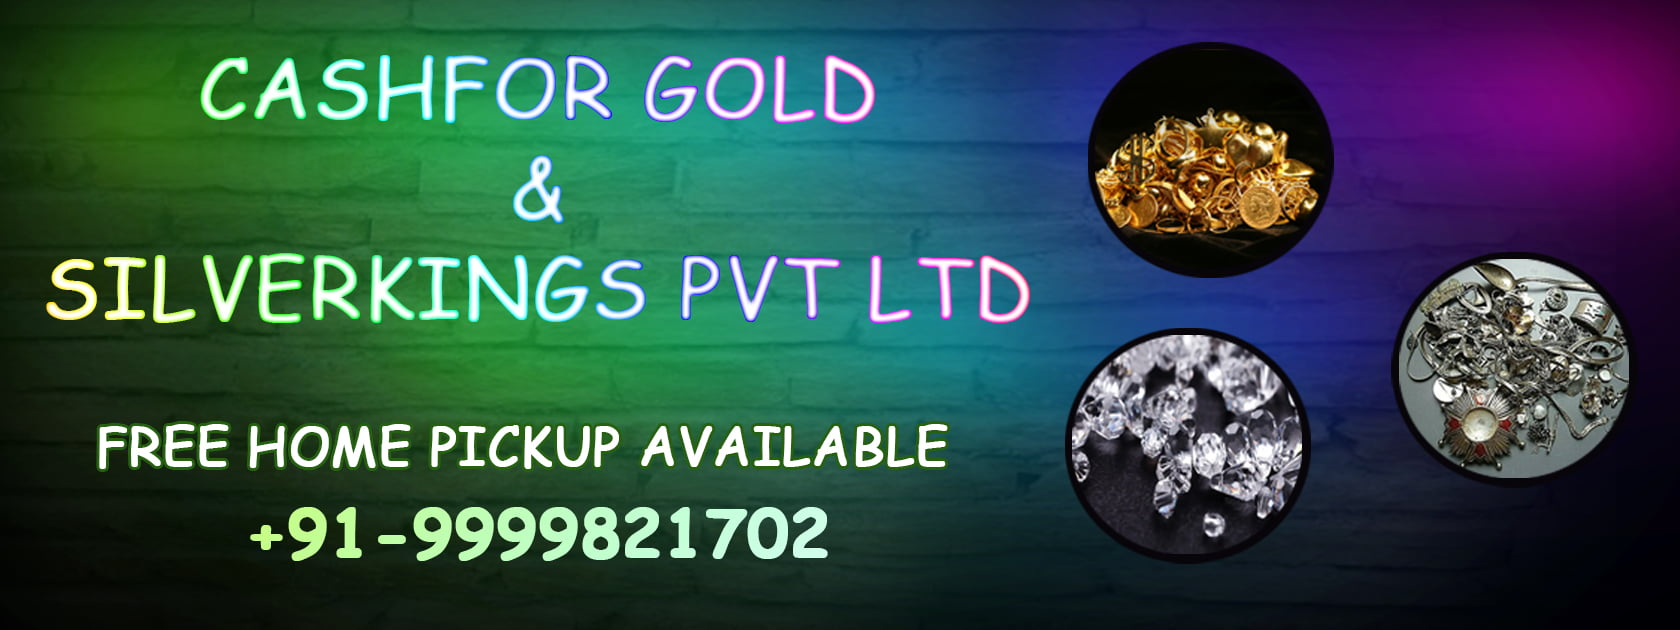 Cash For Gold and Silverkings Outlets And Locations in Delhi NCR